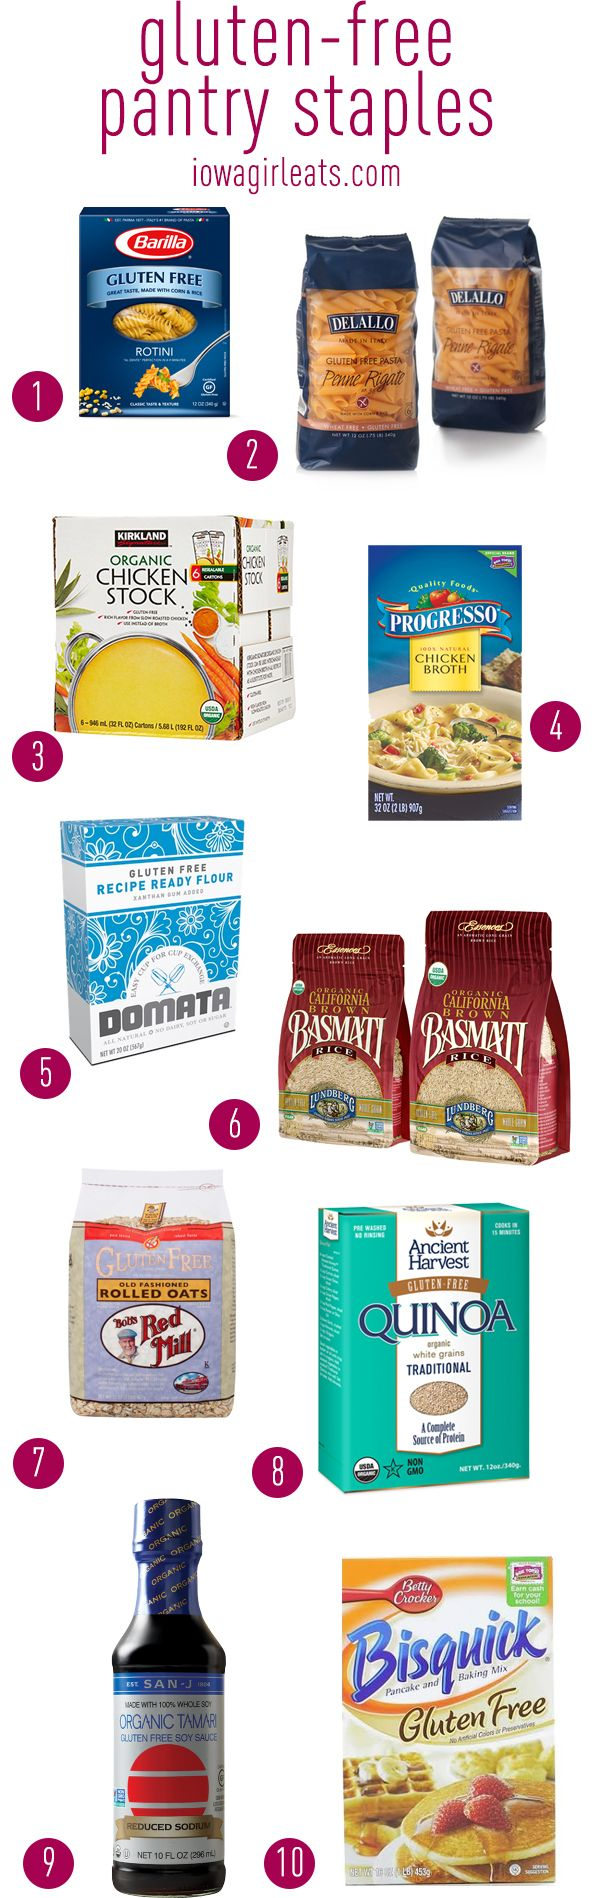 My favorite gluten-free products including snacks, pantry staples, and meats! #glutenfree | iowagirleats.com